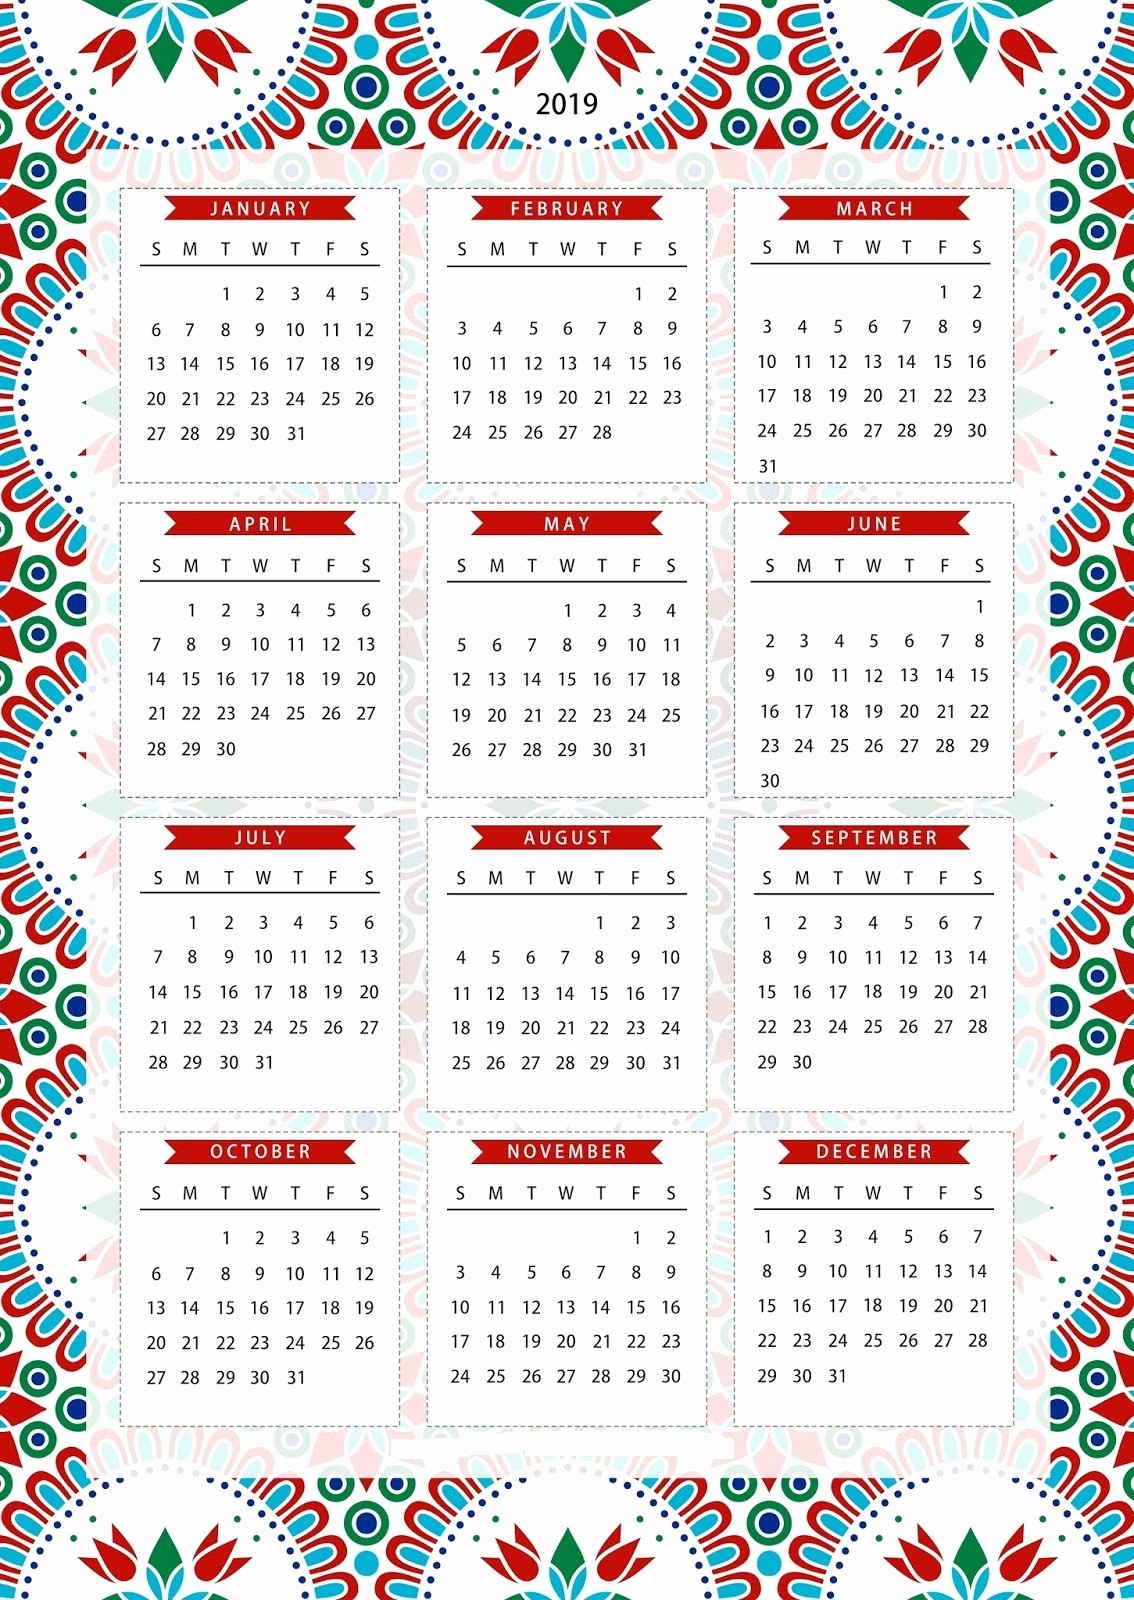 2019 Yearly Calendar One Page Awesome Free E Page Calendar Template Printable Download 2019